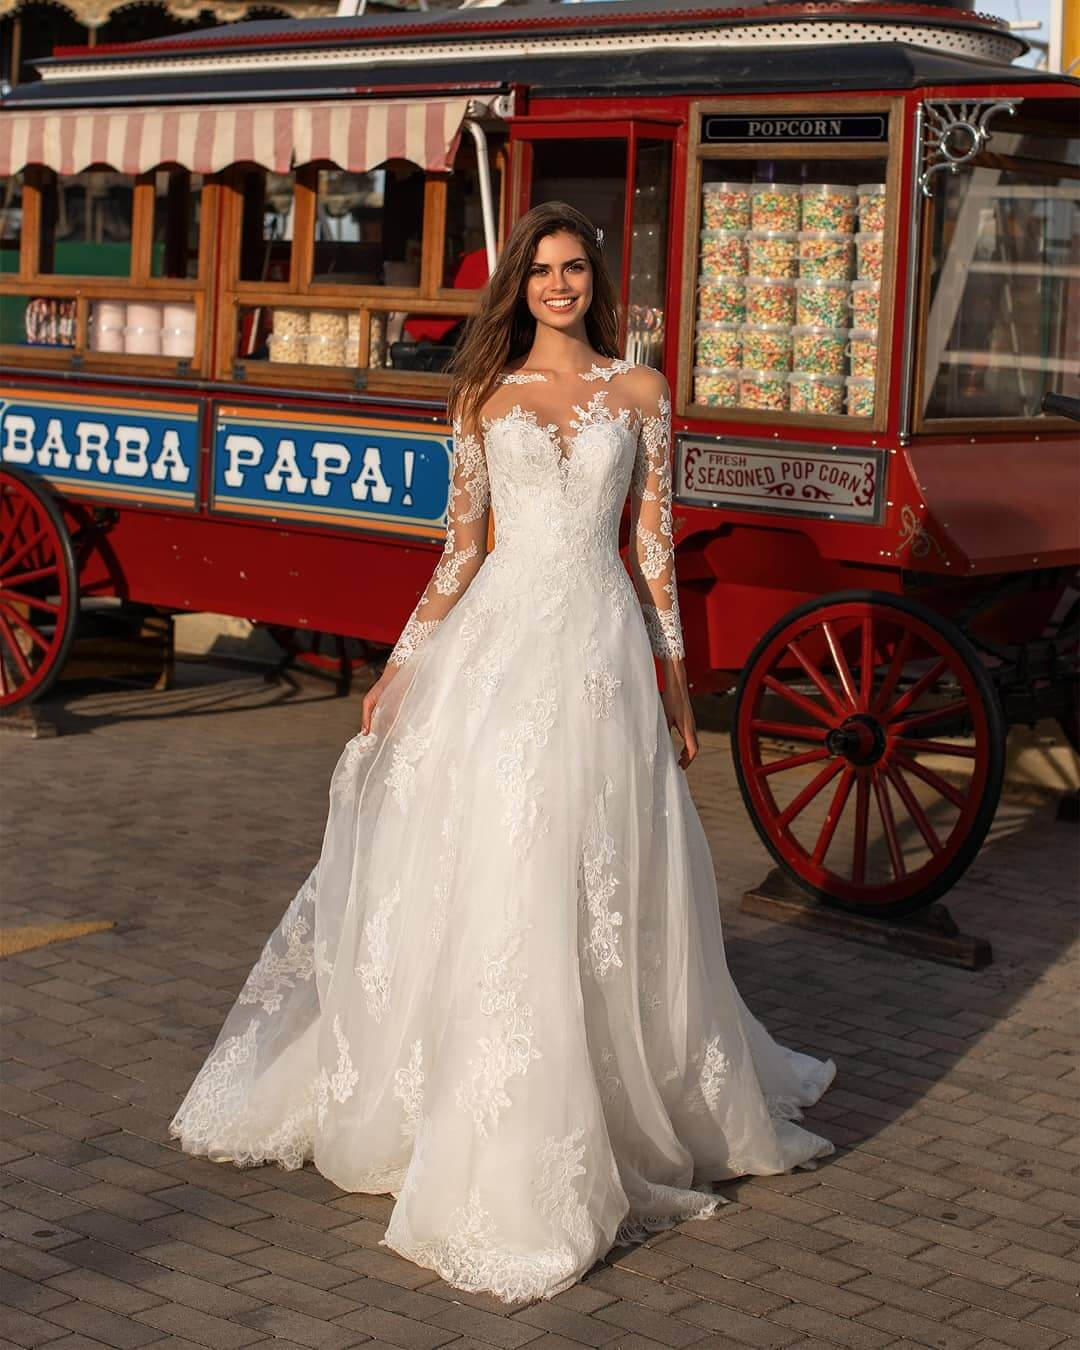 Christian bridal gowns